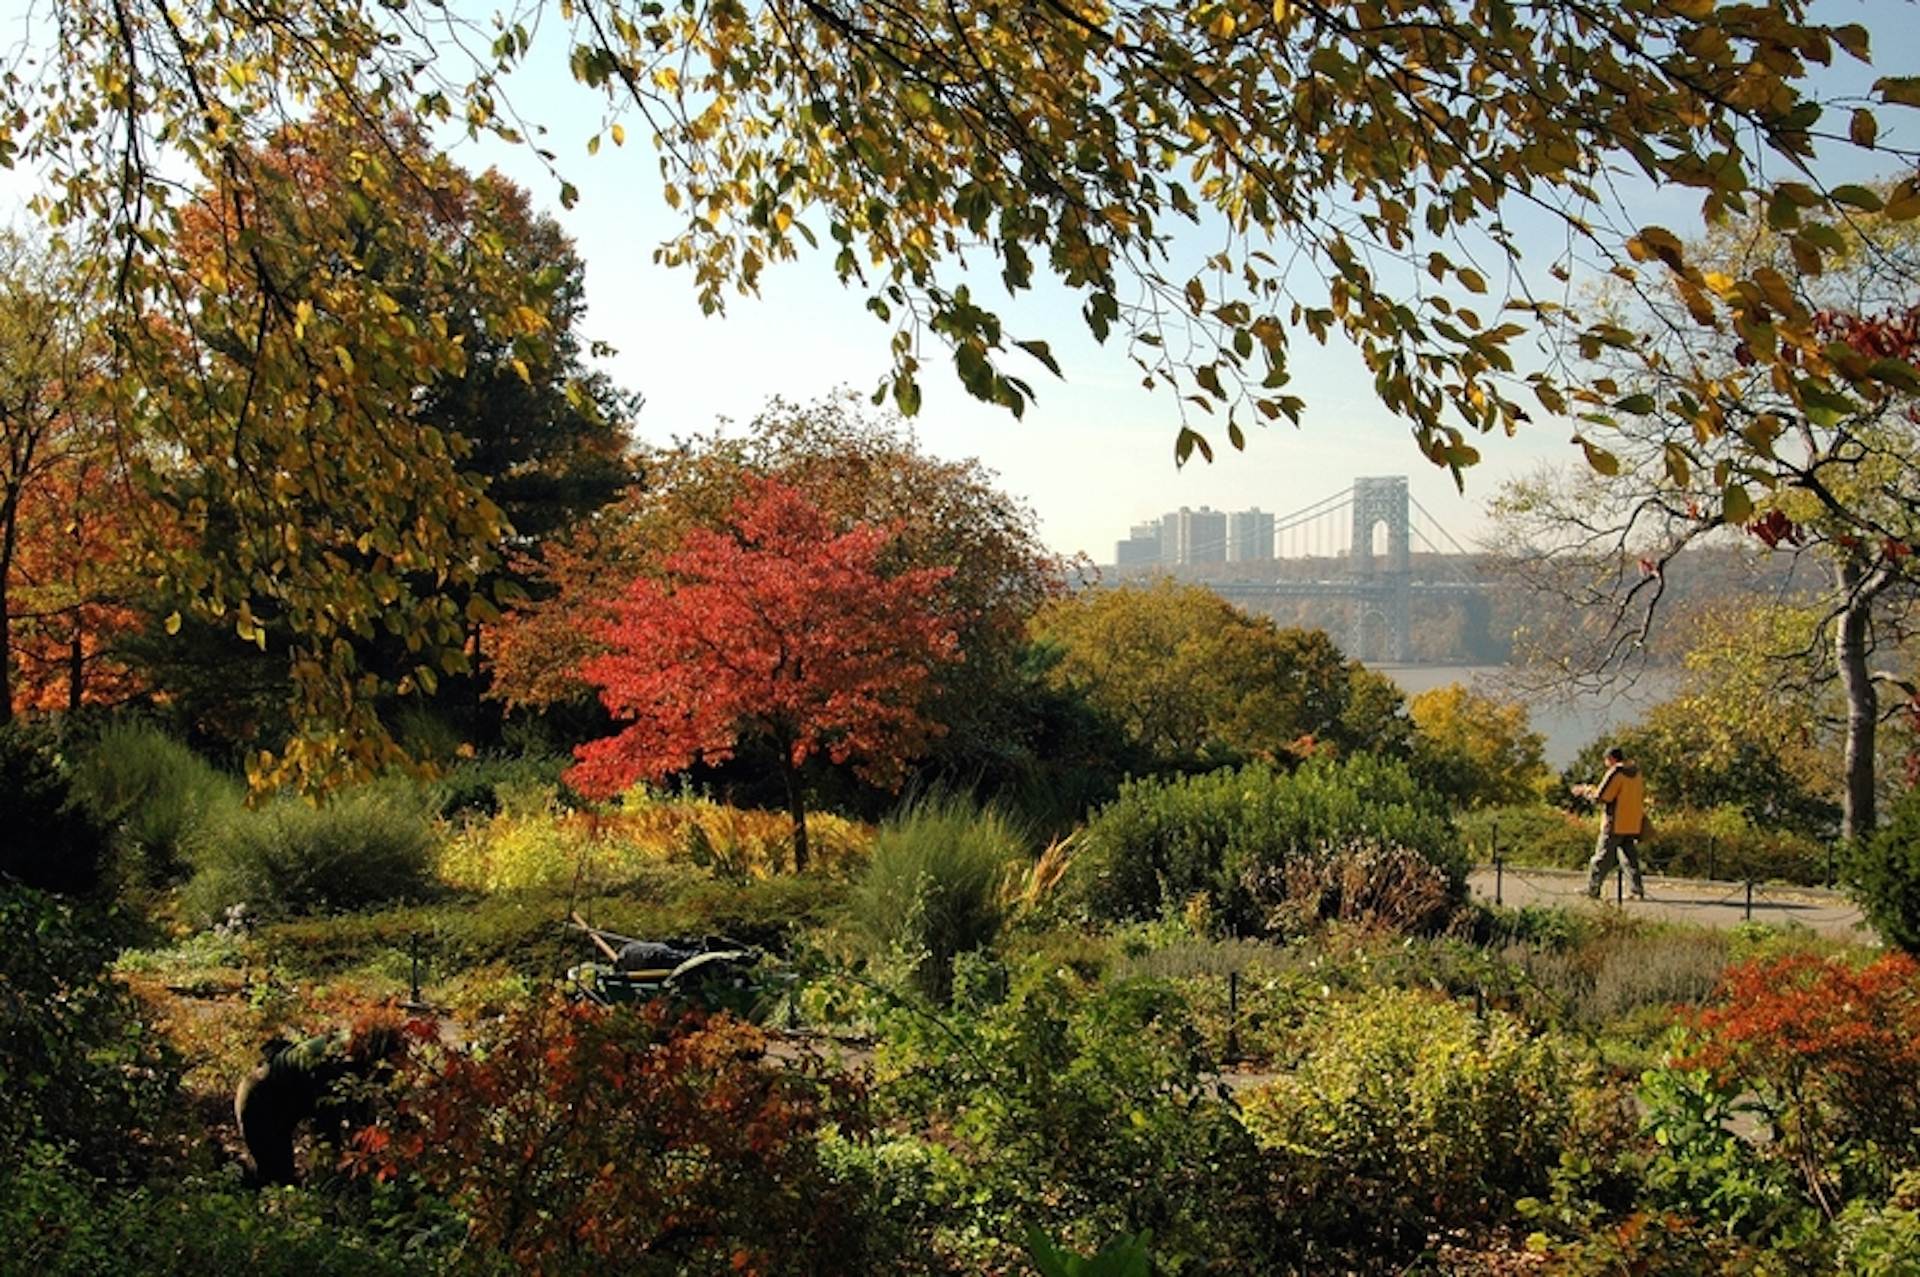 5 NYC Parks You\'ve Never Heard Of - Wherever Family